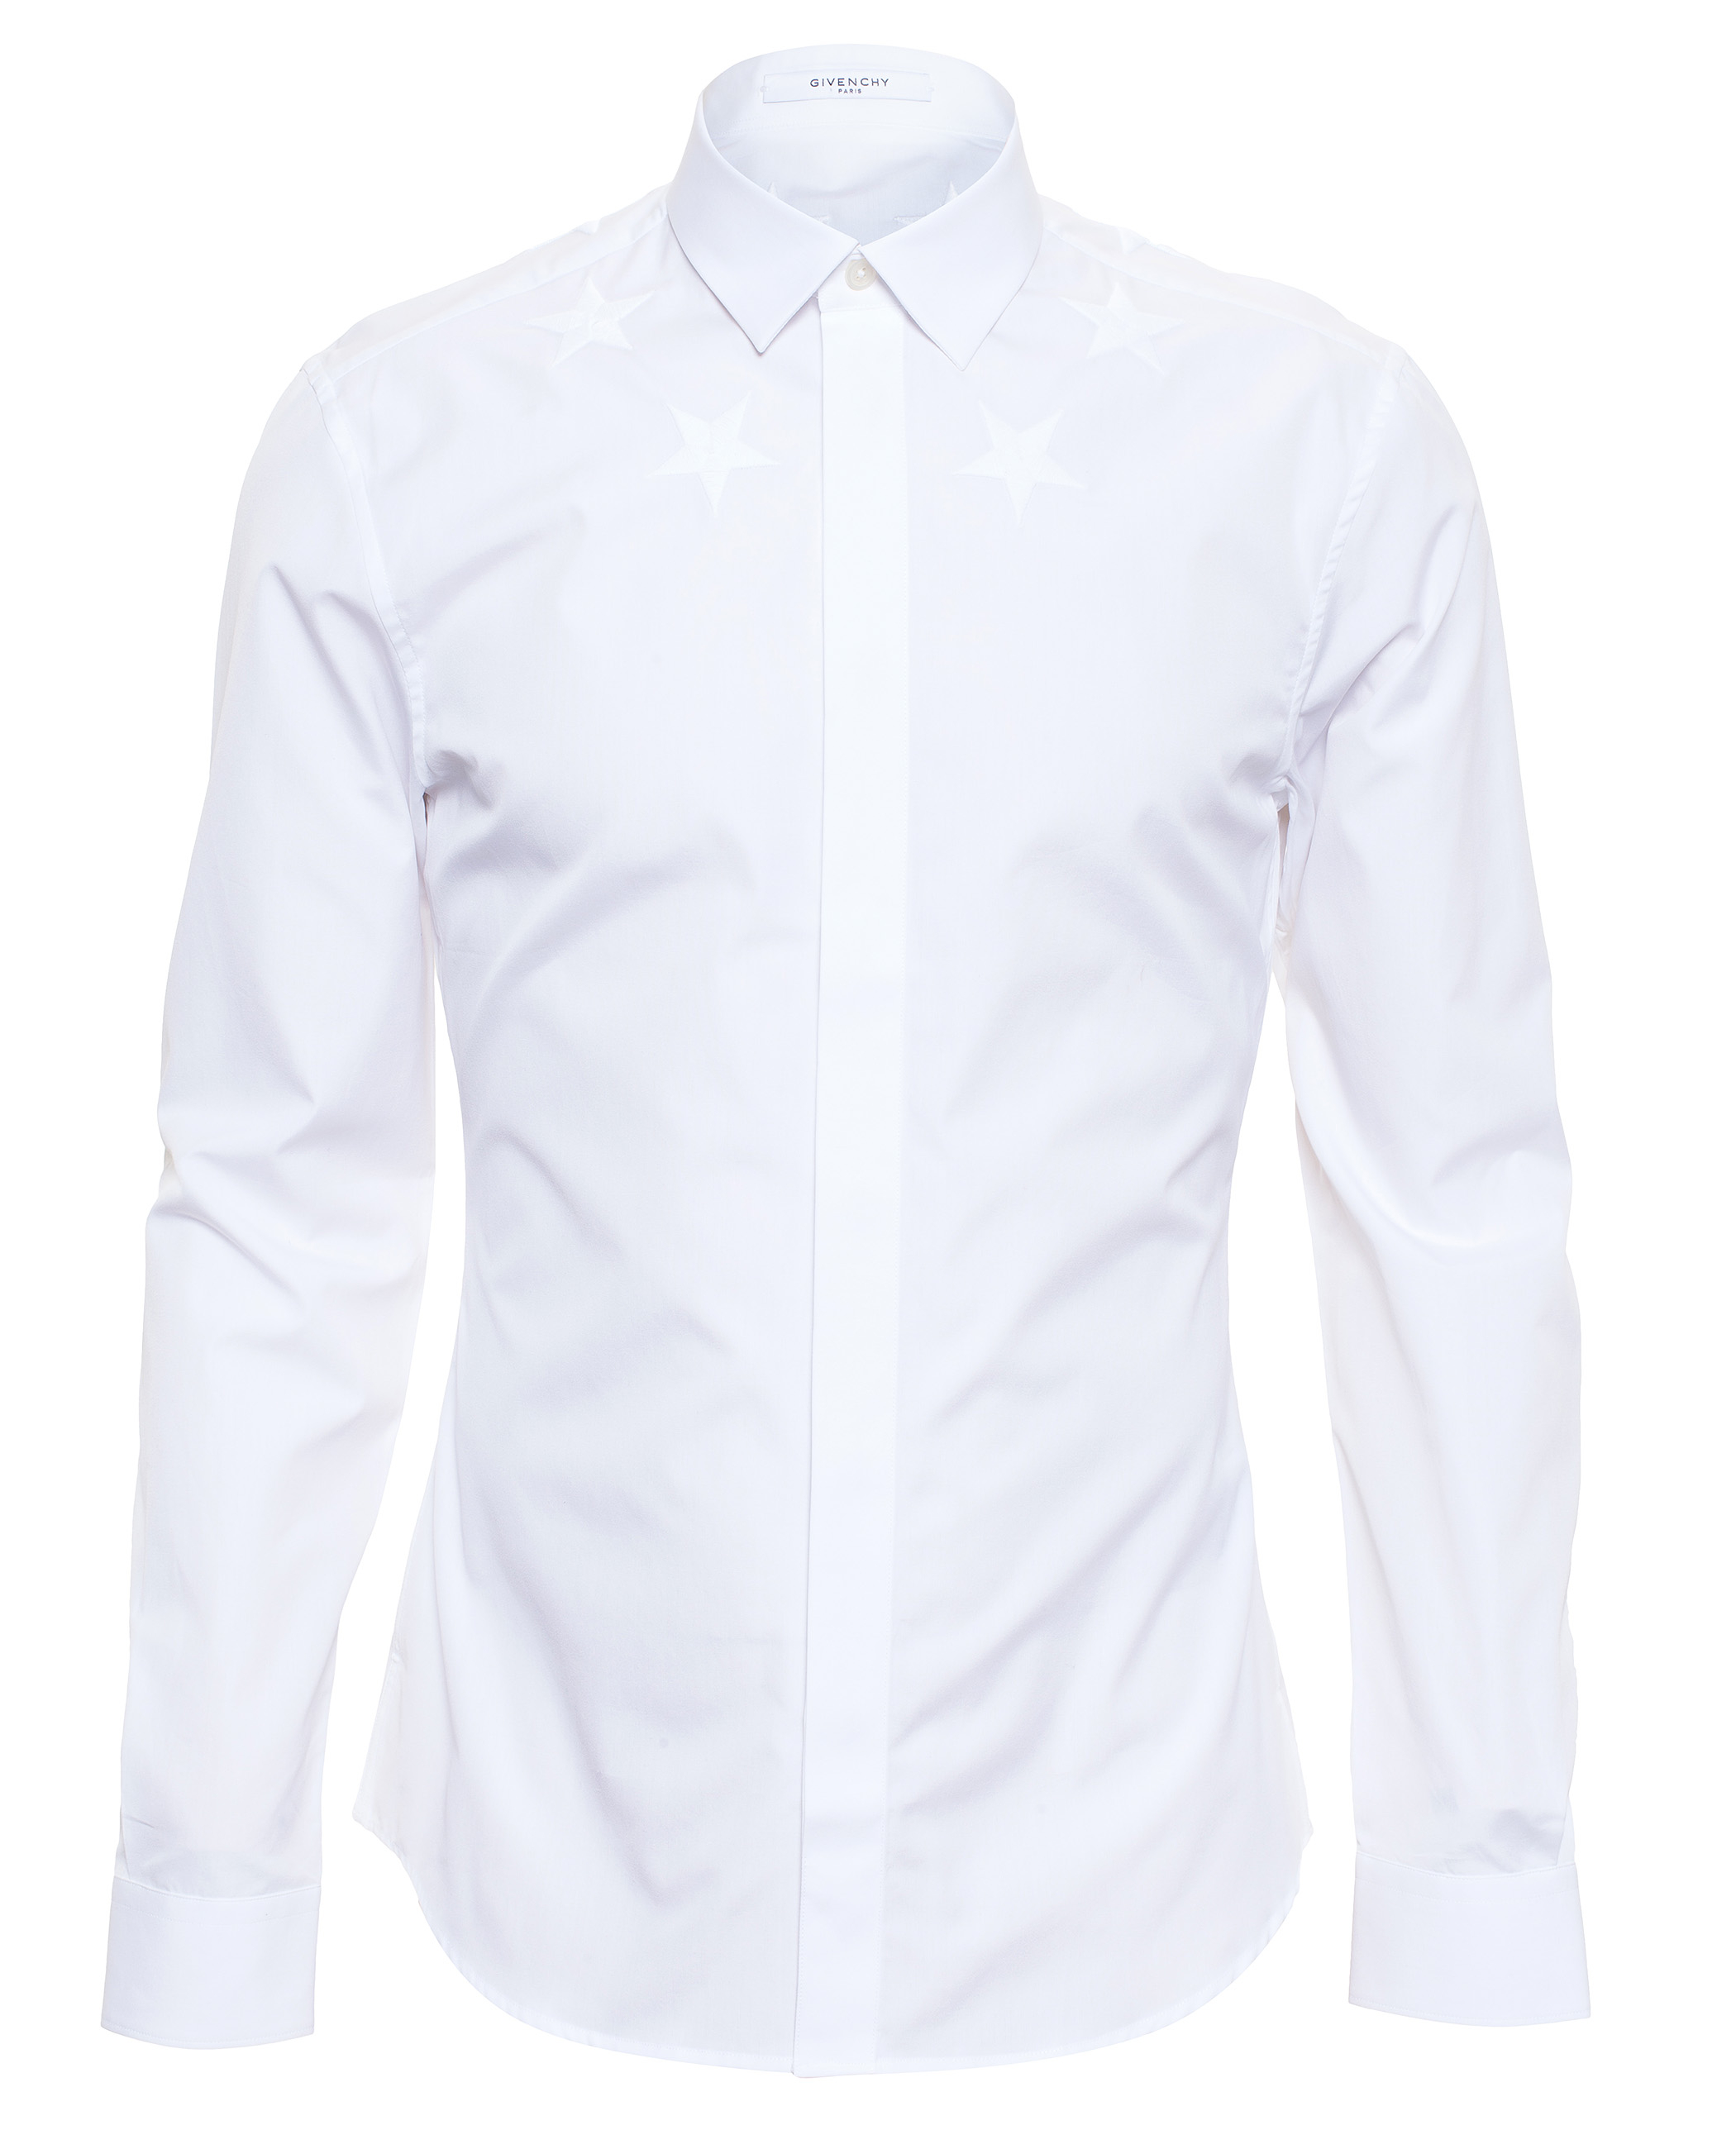 Givenchy cuban fit embroidered star shirt in white for men for Givenchy 5 star shirt